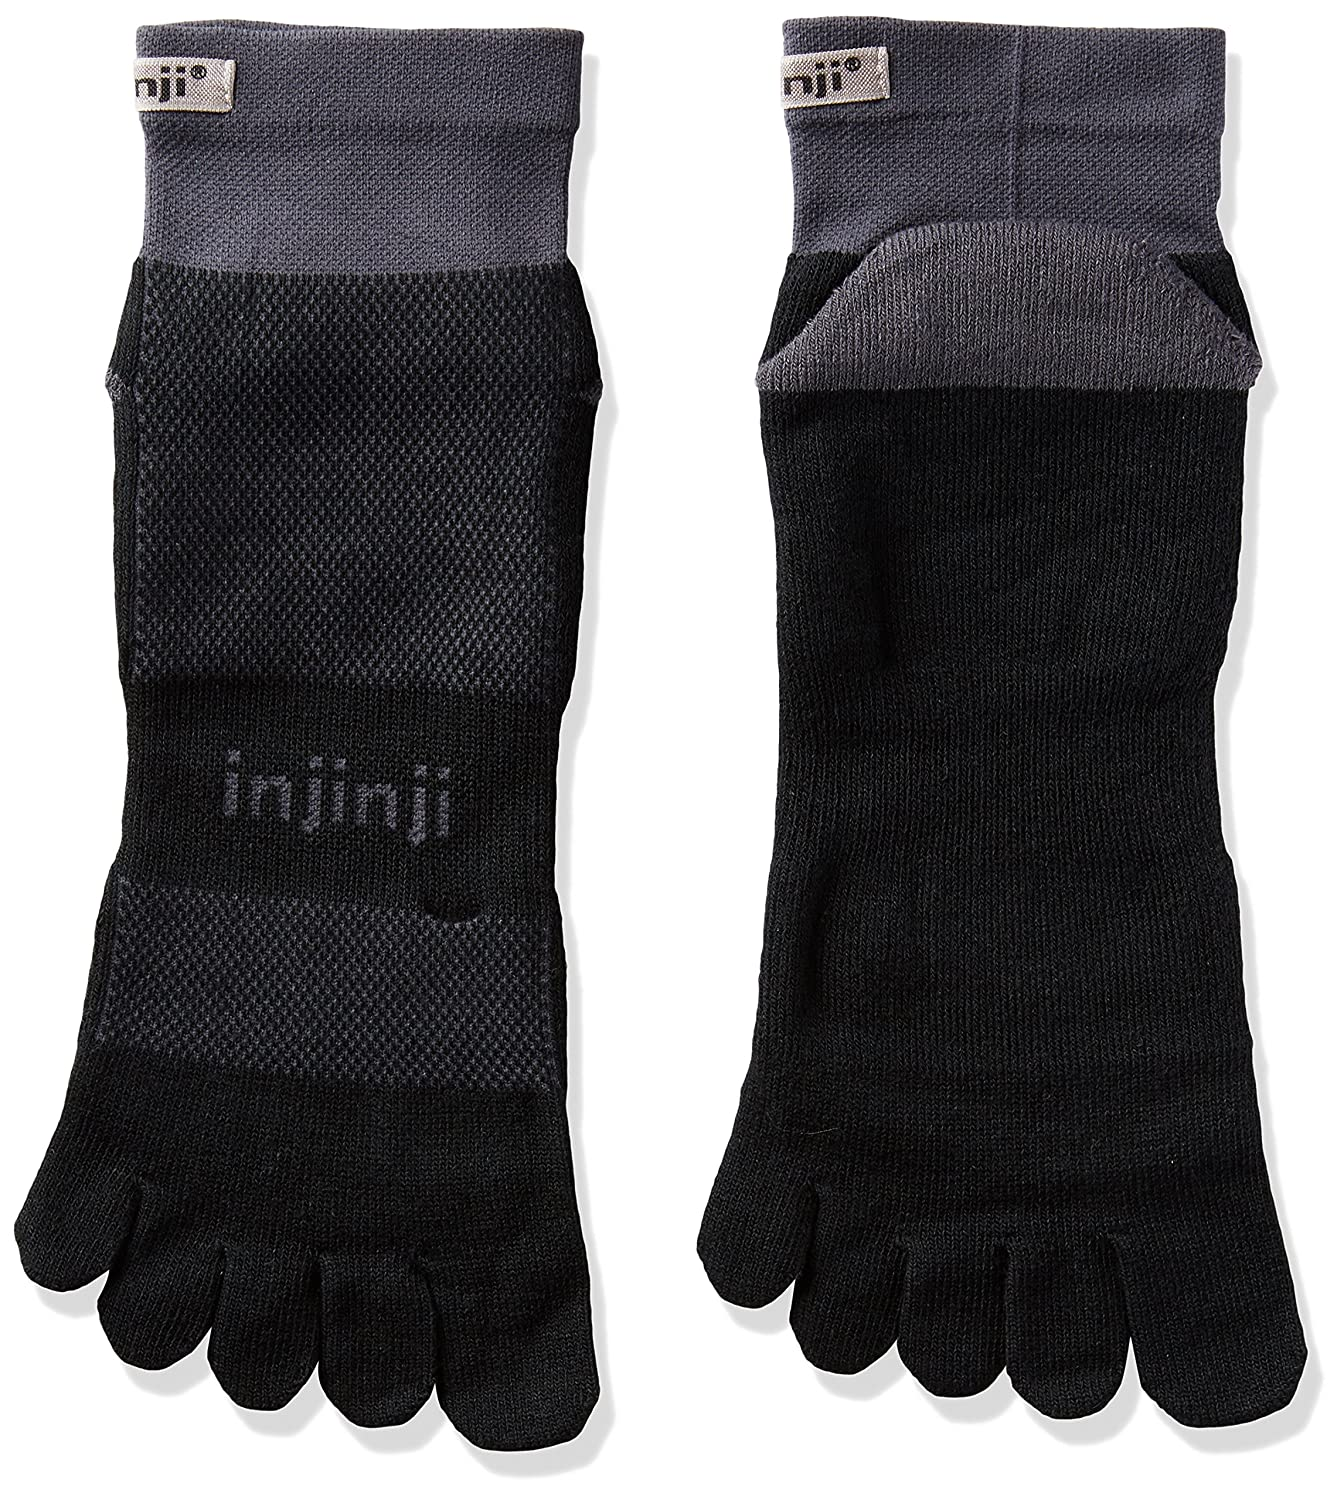 Injinji Socks Run Midweight Mini Crew White/Grey Running Toe Socks 203230-BLG-XL